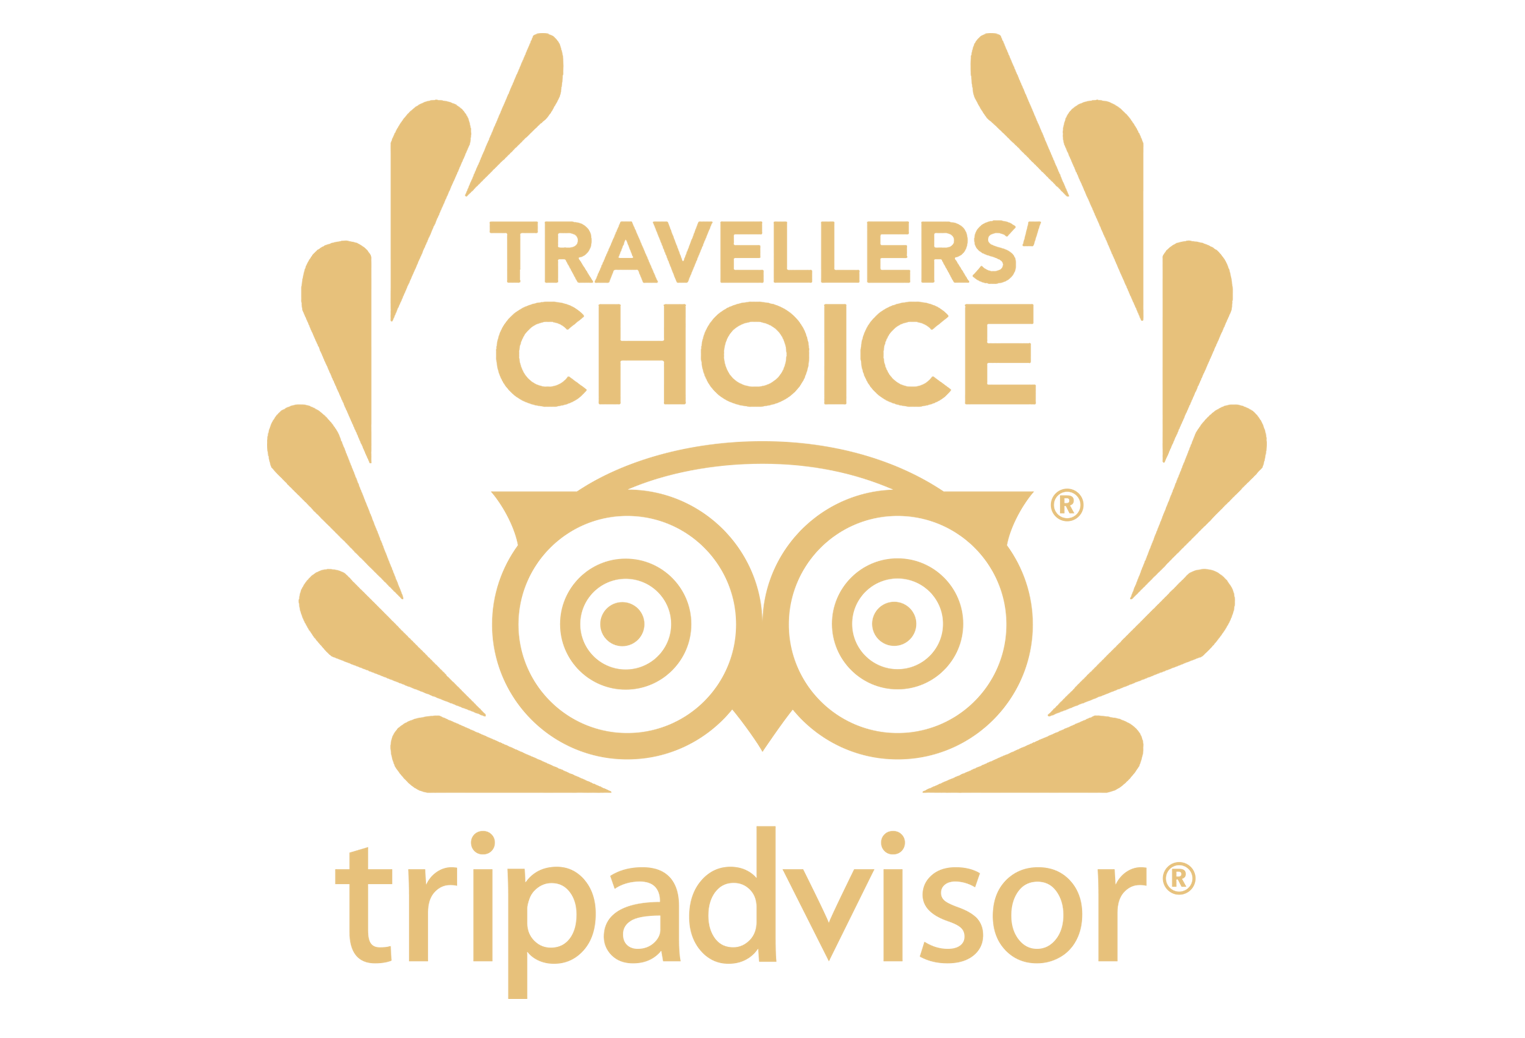 We Have Been Awarded By TripAdvisor Every Year From 2011 Our Visitors Consistently Write Great Reviews About Hotel